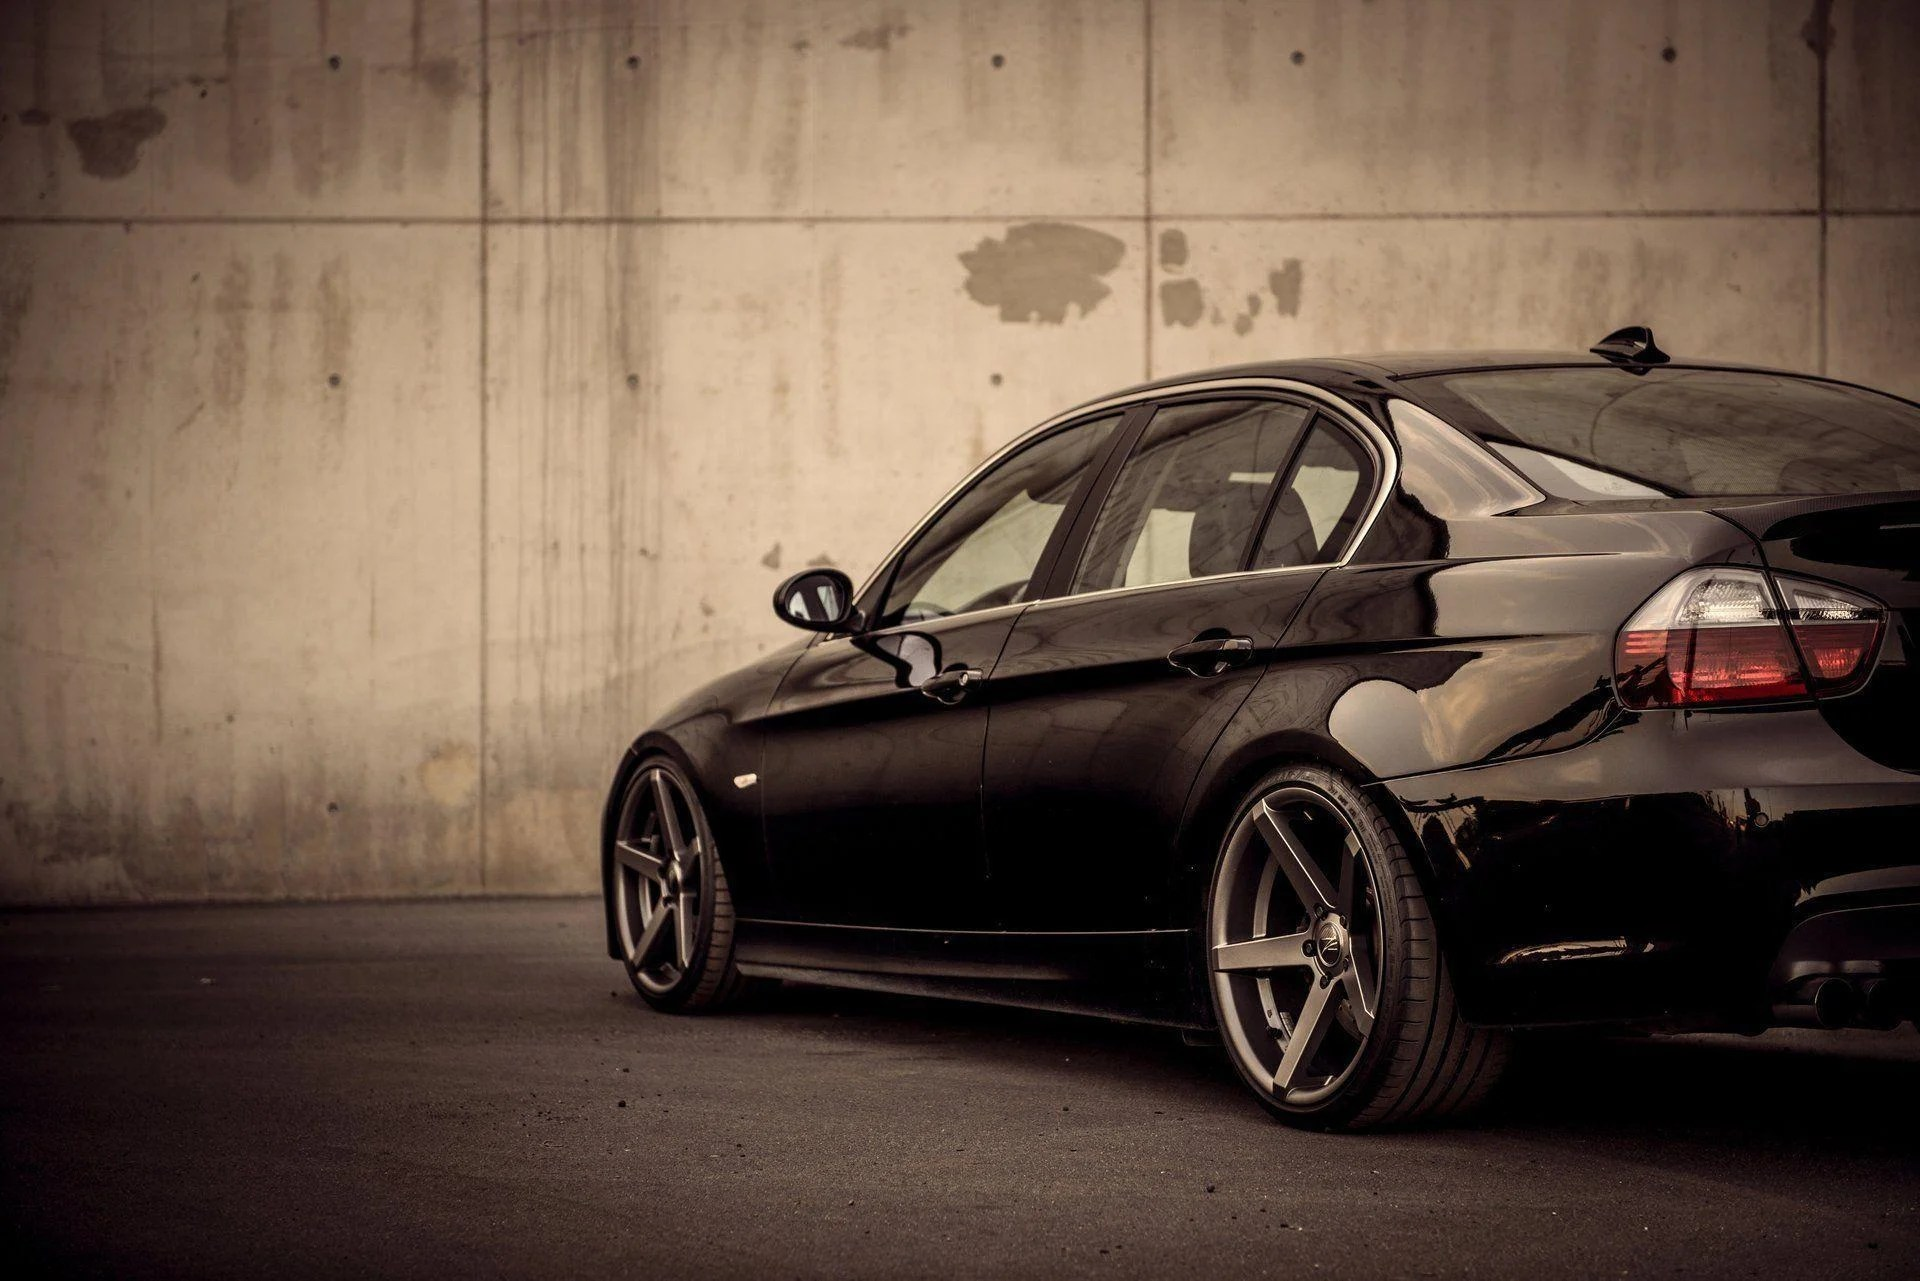 BMW E90 Wallpapers   Wallpaper Cave bmw e90 deep cpncave bmw rear light HD wallpaper